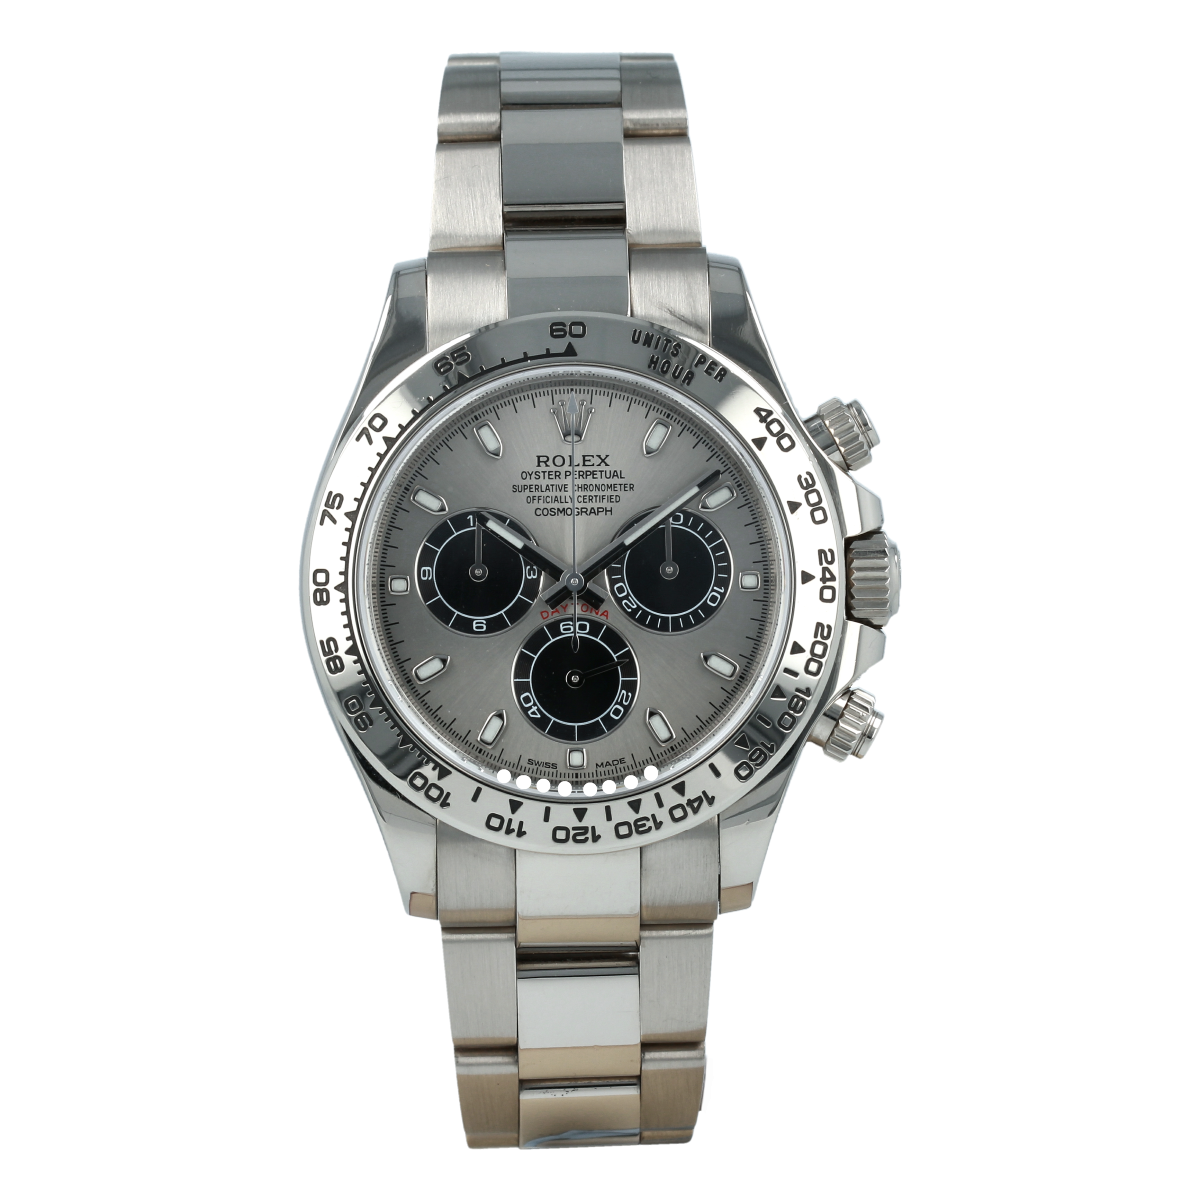 Rolex Cosmograph Daytona 116509 White Gold Steel Dial *Full Set* | Buy pre-owned Rolex watch